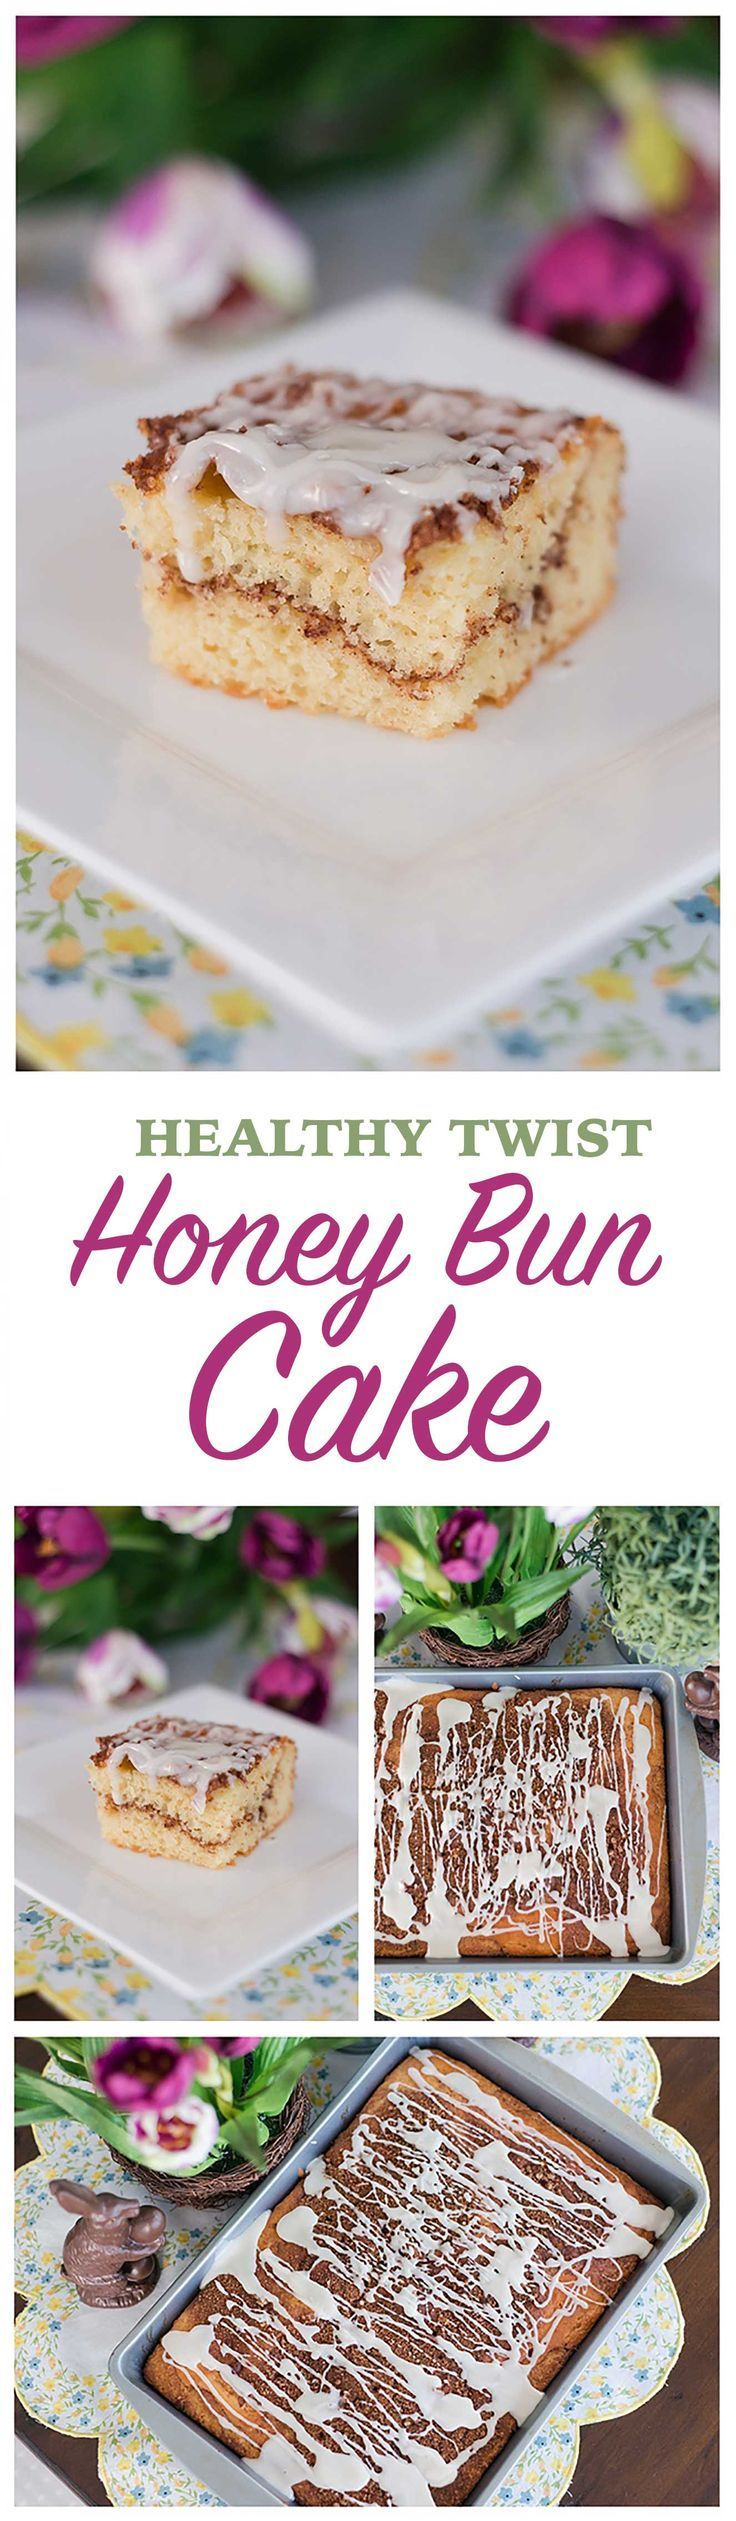 This easy Easter dessert recipe is lightened up thanks to a couple of simple substitutions Make this guiltfree Honey Bun Cake for dessert or brunch So quick and easy the...